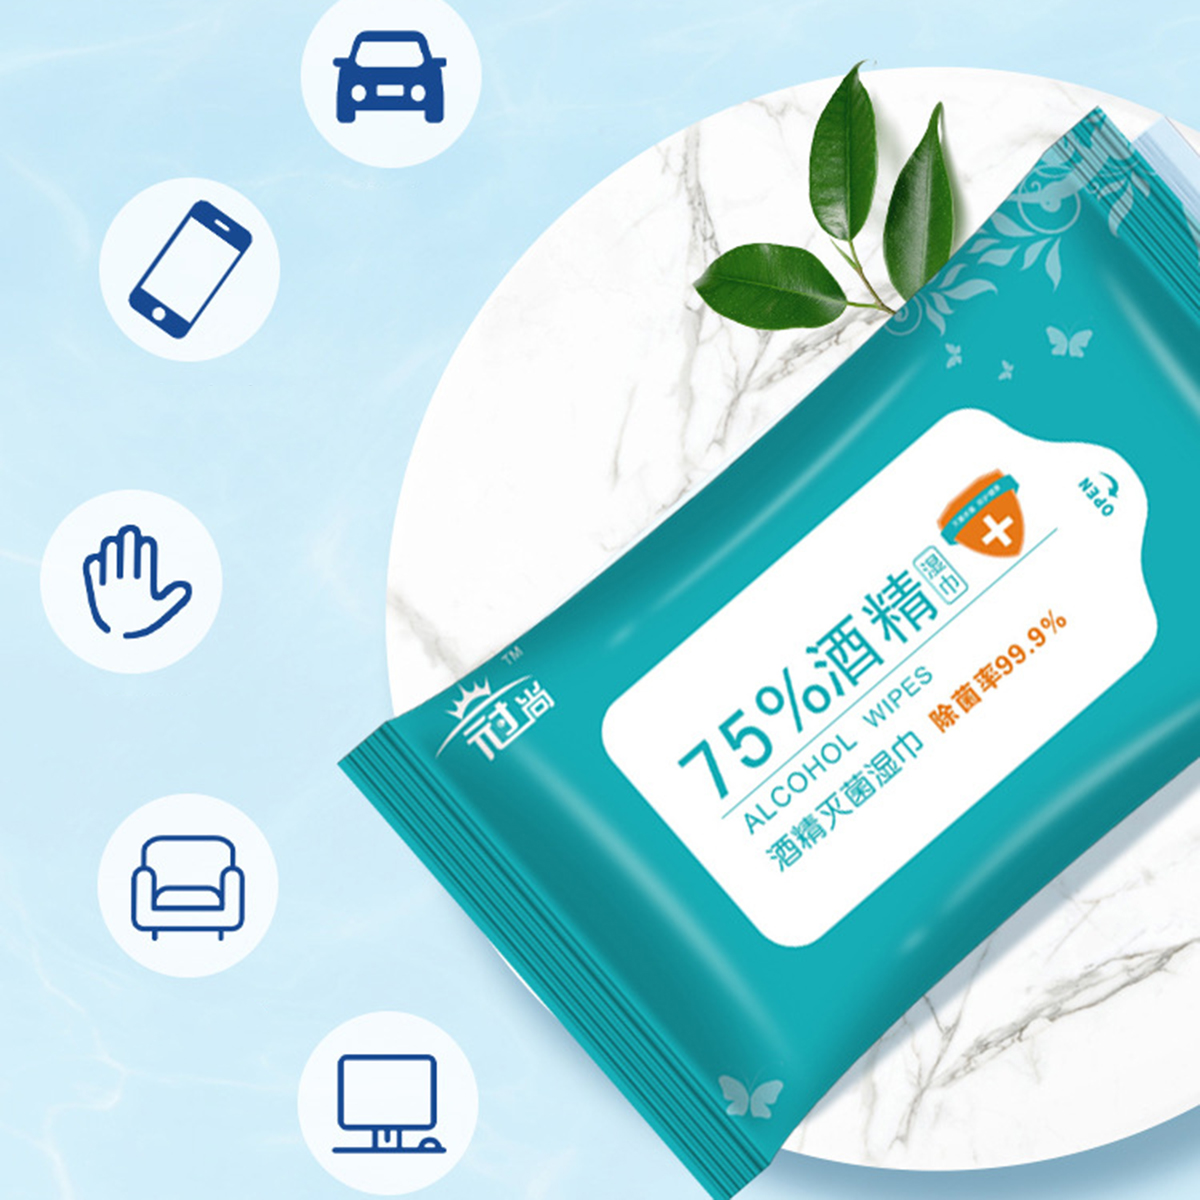 1 Pack Of Draw-out Type Disposable Wet Wipes Hands Toys Cleaning Portable Wipes Water Antibacterial Wipes (10 Count Totally)